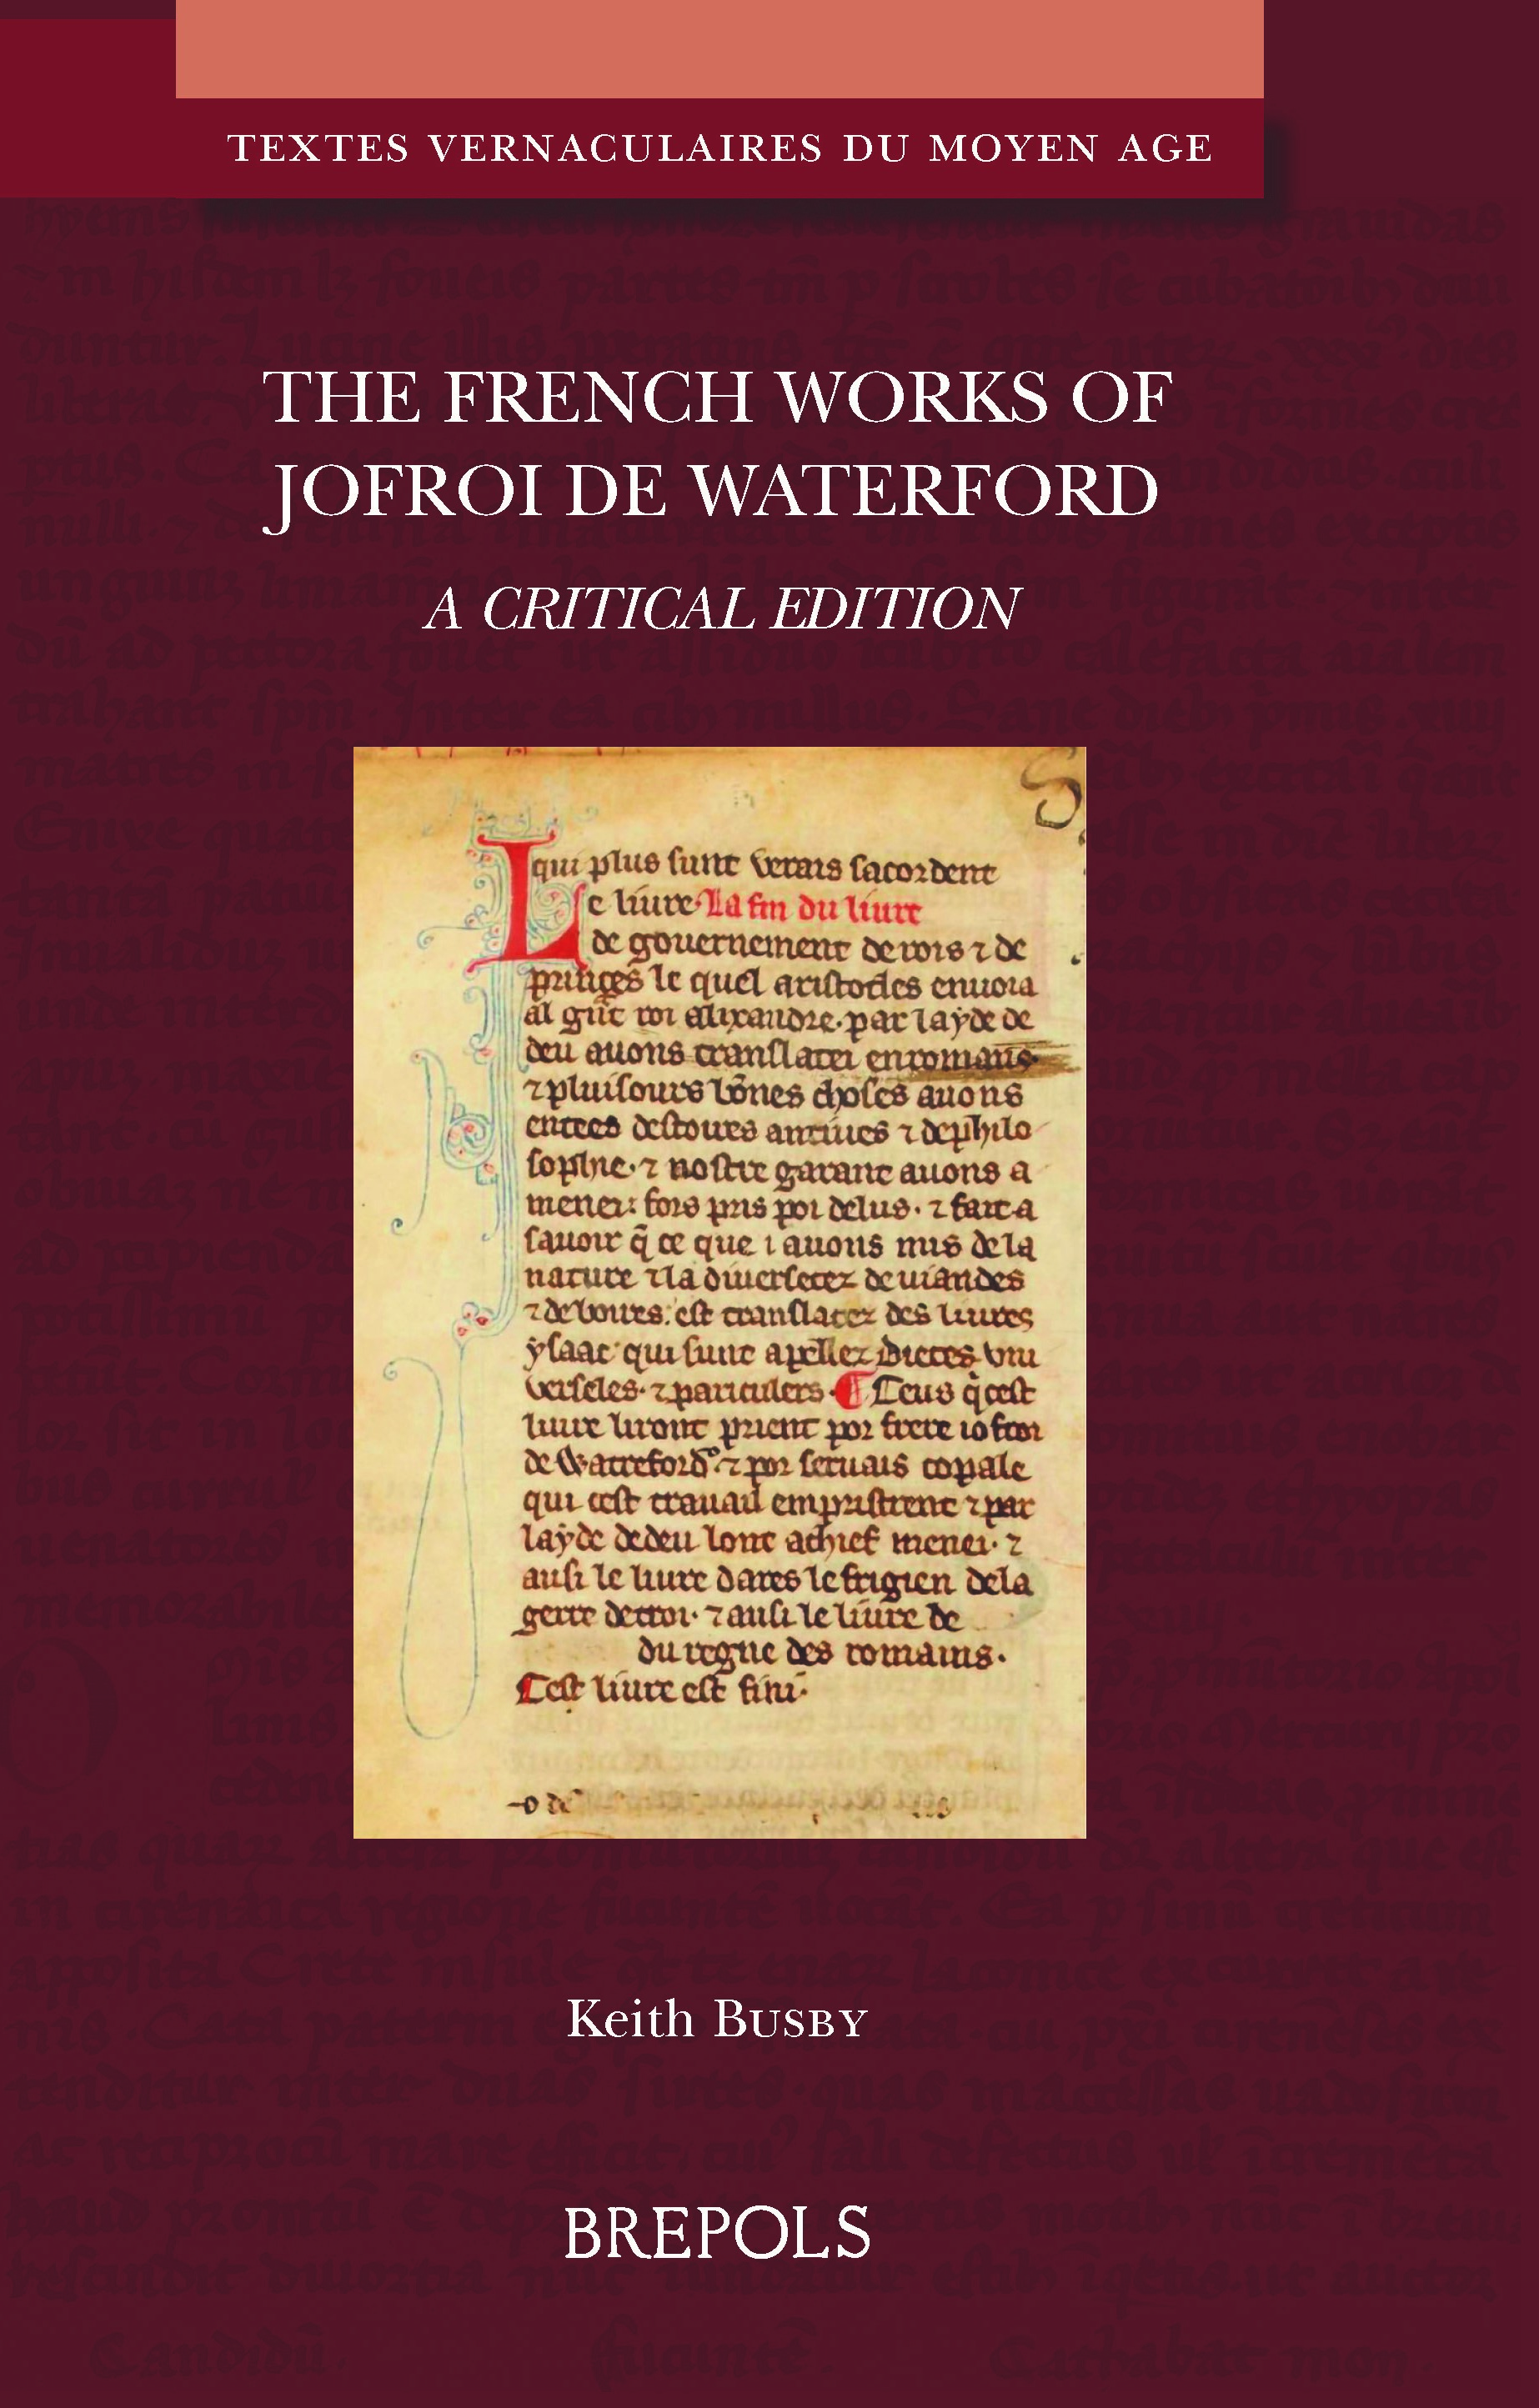 The French Works of Jofroi de Waterford (éd. K. Busby)